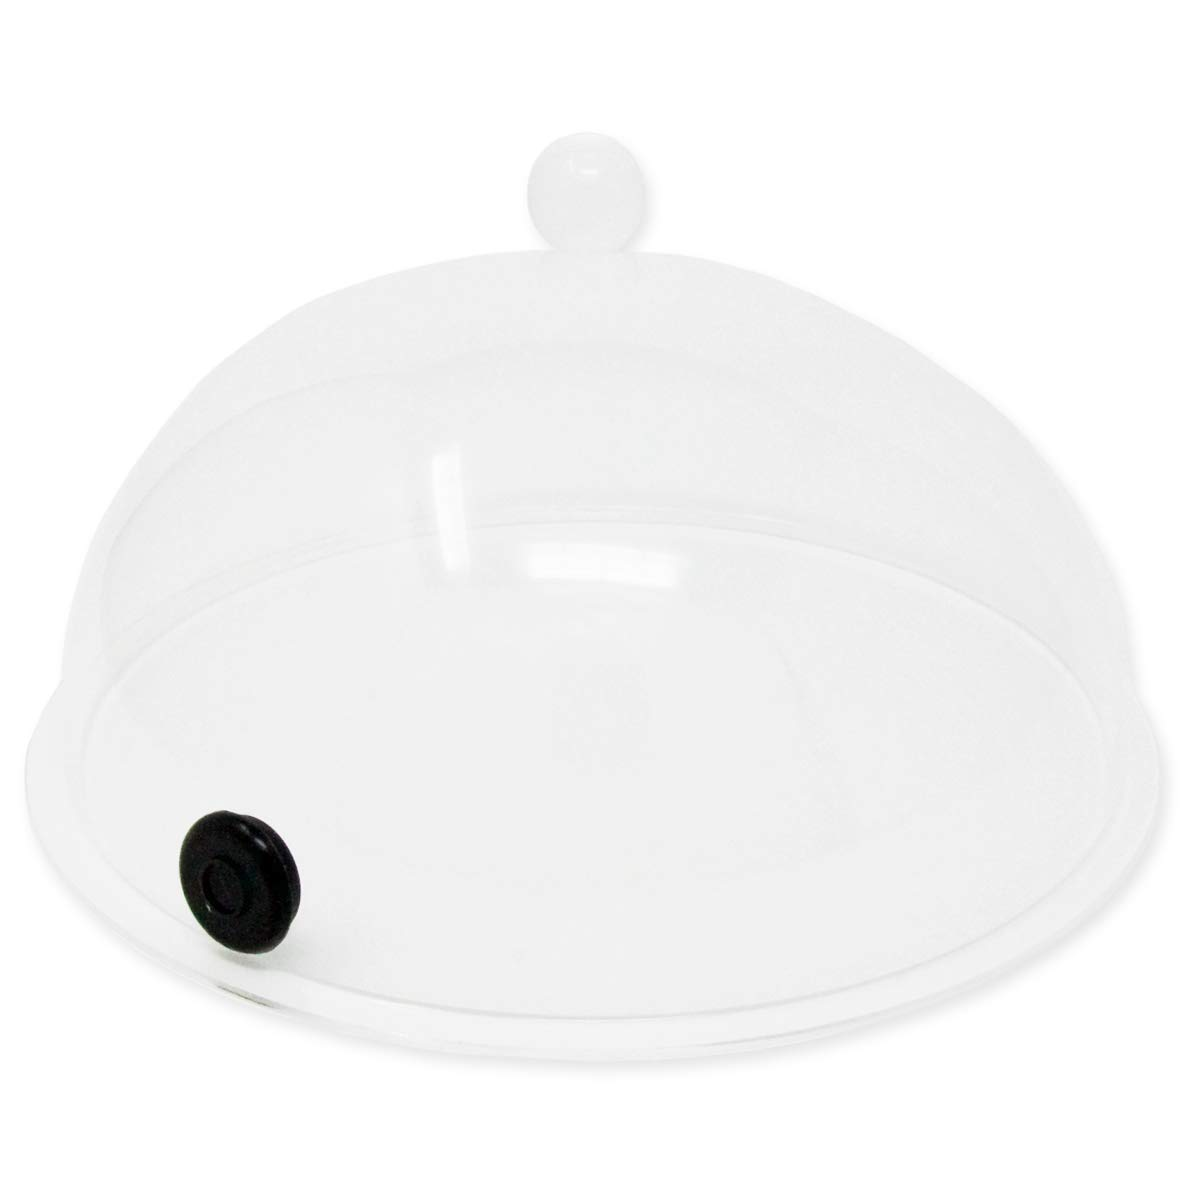 CHICBLE Smoking Cloche Dome Cover - for Smoke Infuser Specialized Accessory for Smoker Gun Smoking Infusion Plates, Bowls and Glasses, Transparent by CHICBLE